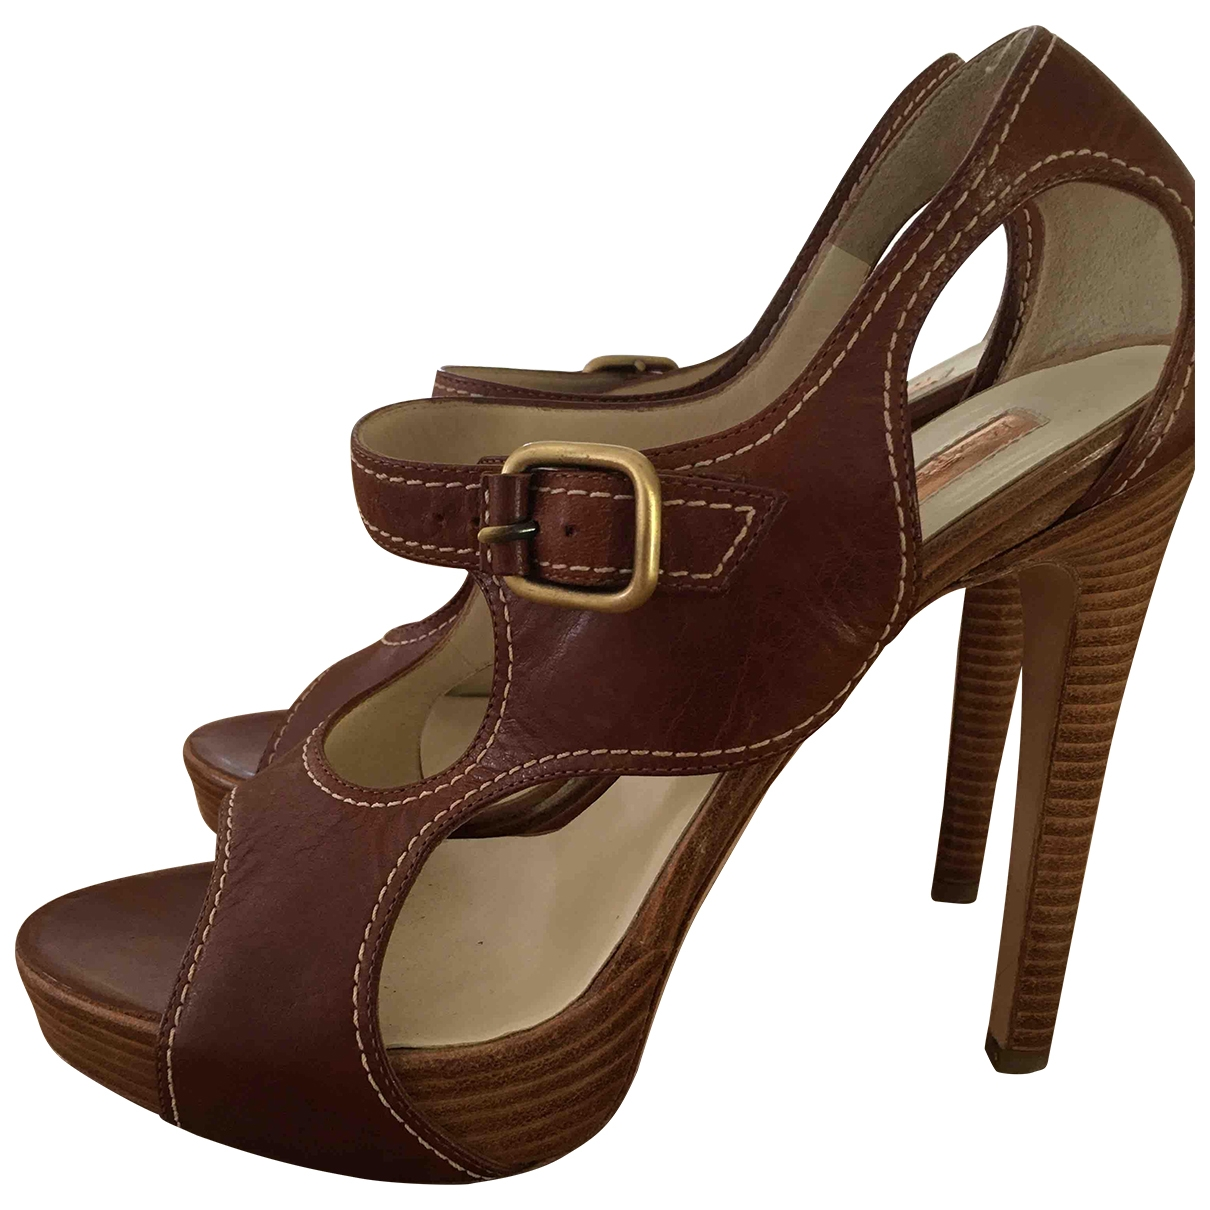 Rupert Sanderson \N Brown Leather Sandals for Women 38 EU